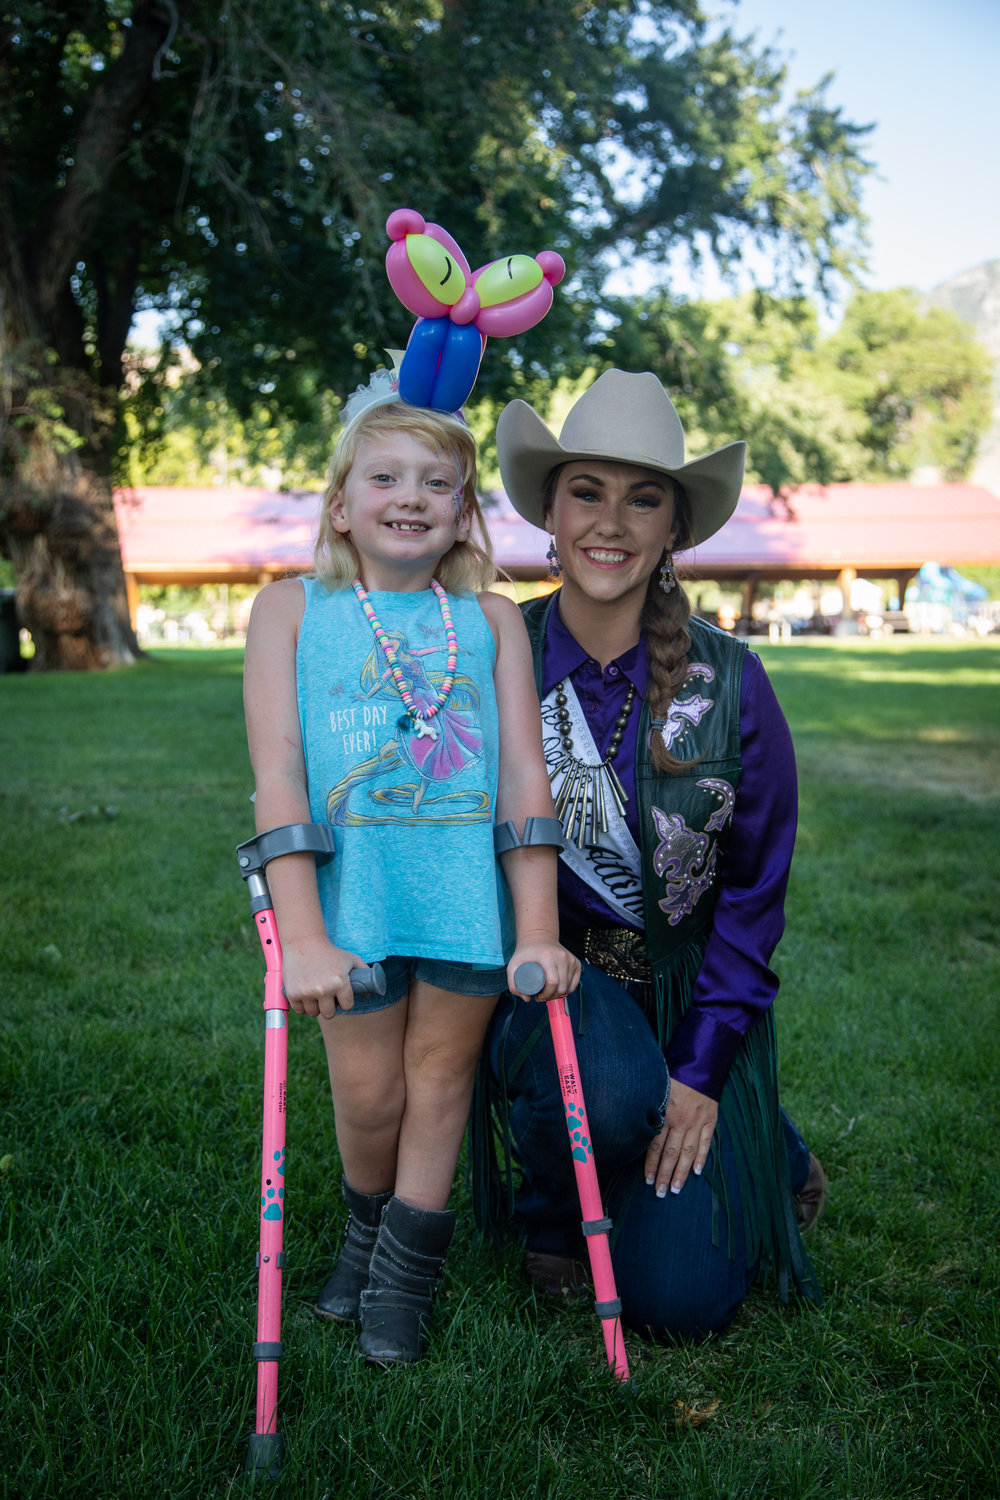 Allison McKay, 7, and Jayna Scadden, first attendant, at the Special Kids Rodeo on Tuesday evening, July 17, 2018, in Lorin Farr Park.